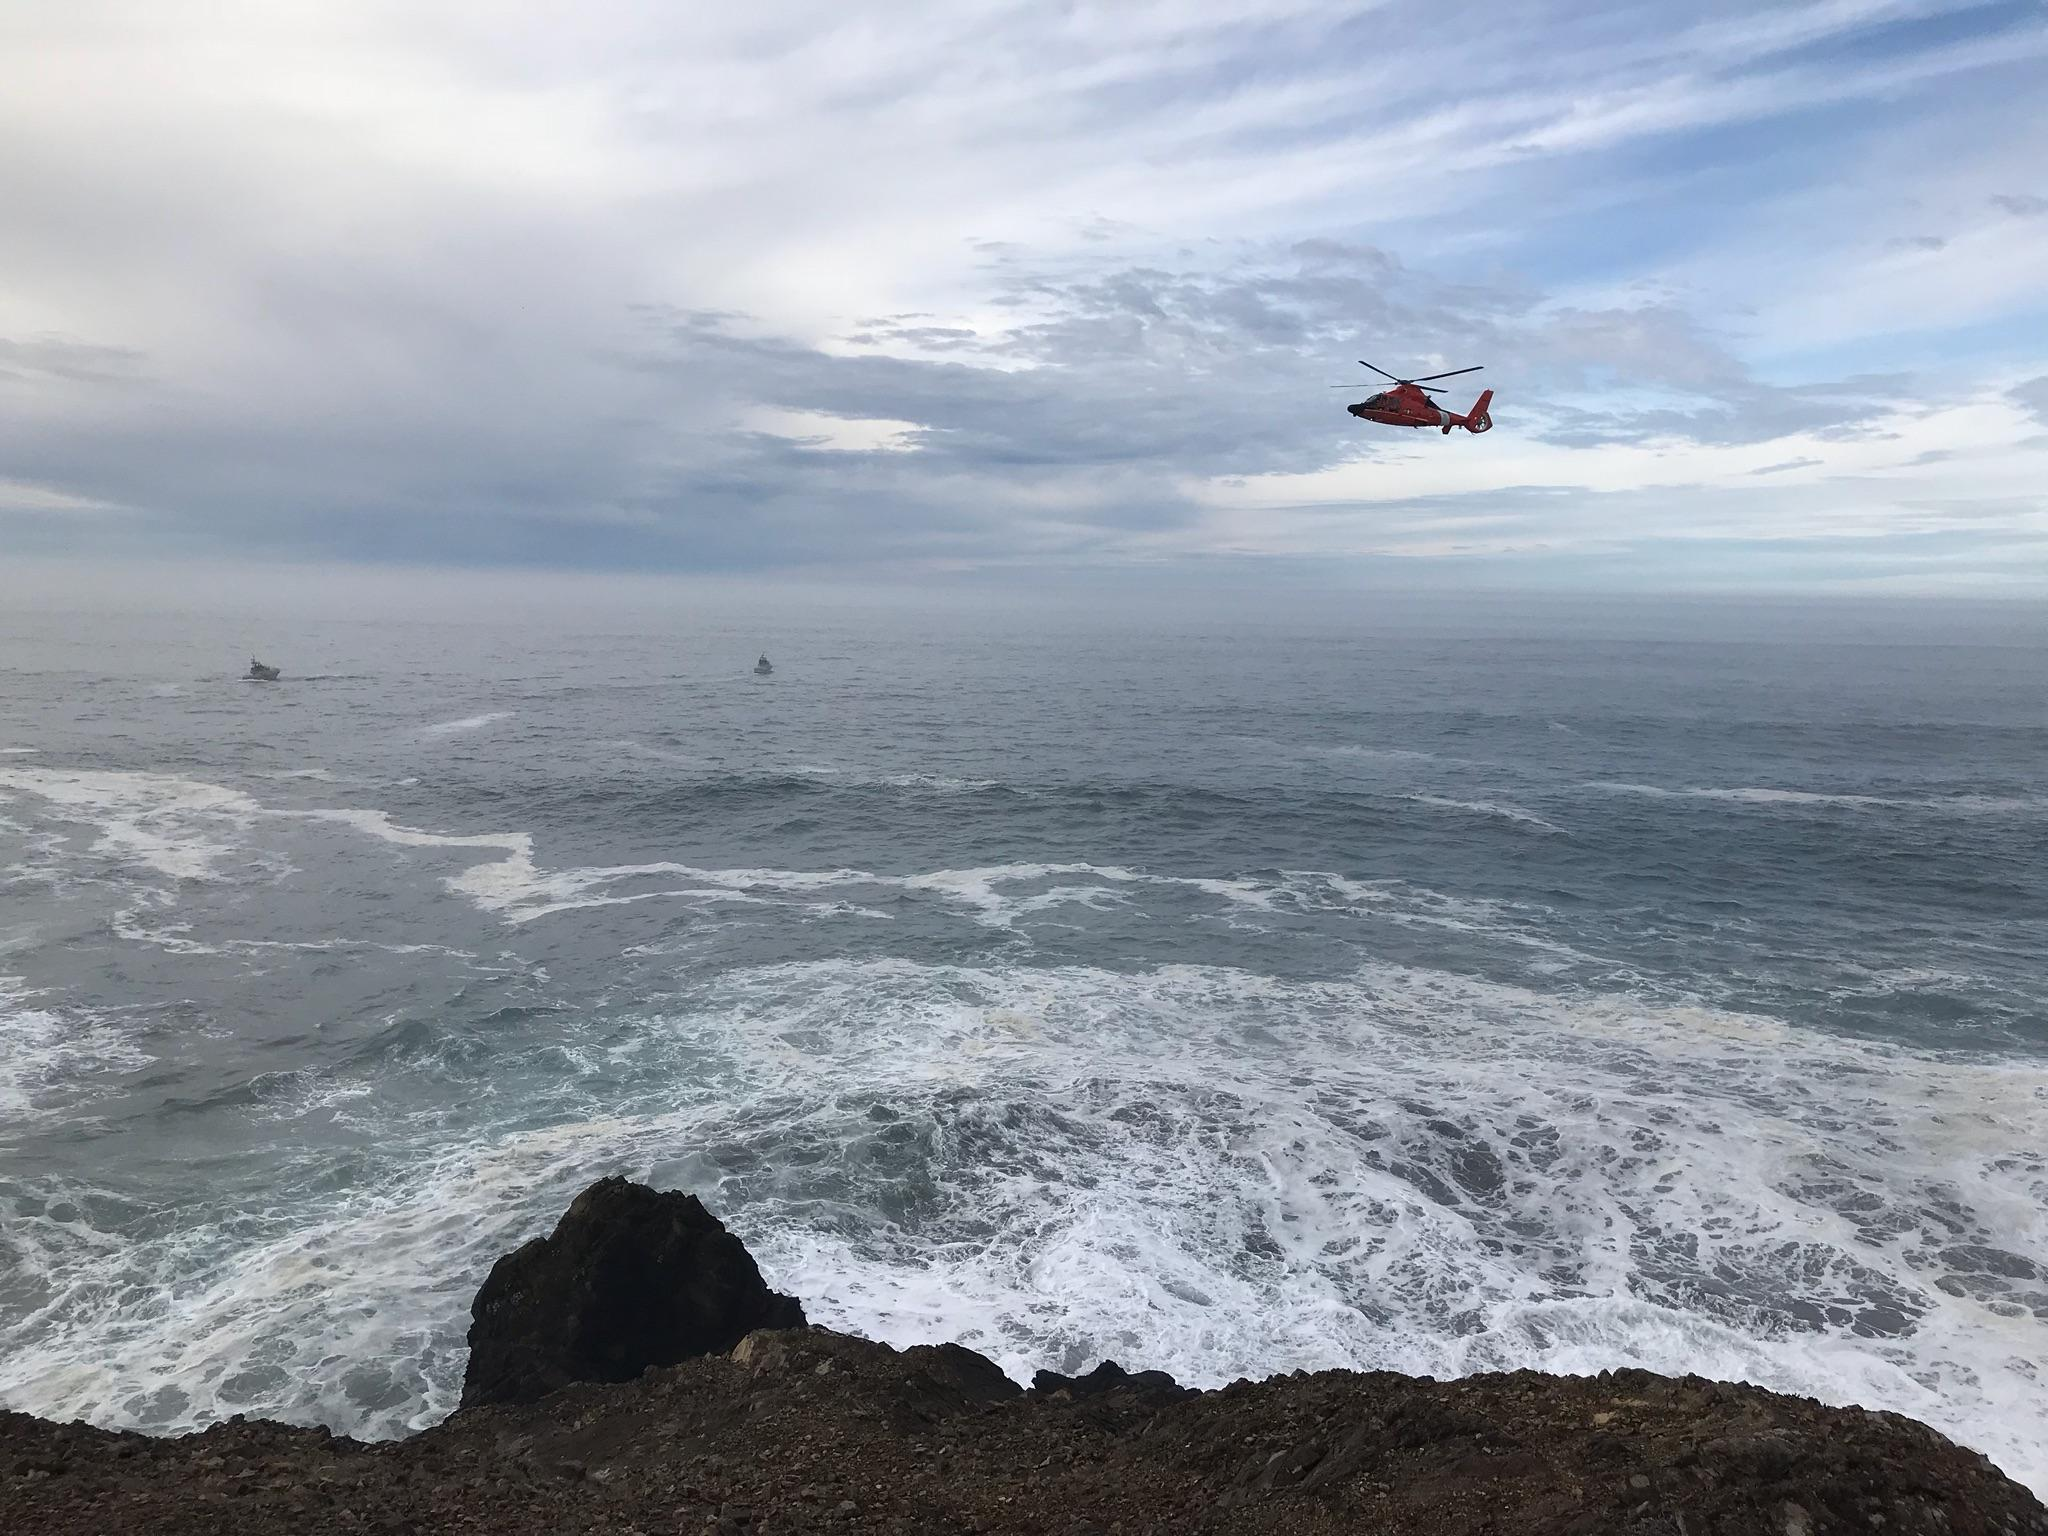 """The search effort, which is still underway, is expected to continue until sunset or when conditions no longer safely allow,"" police said in a statement. (OSP)"